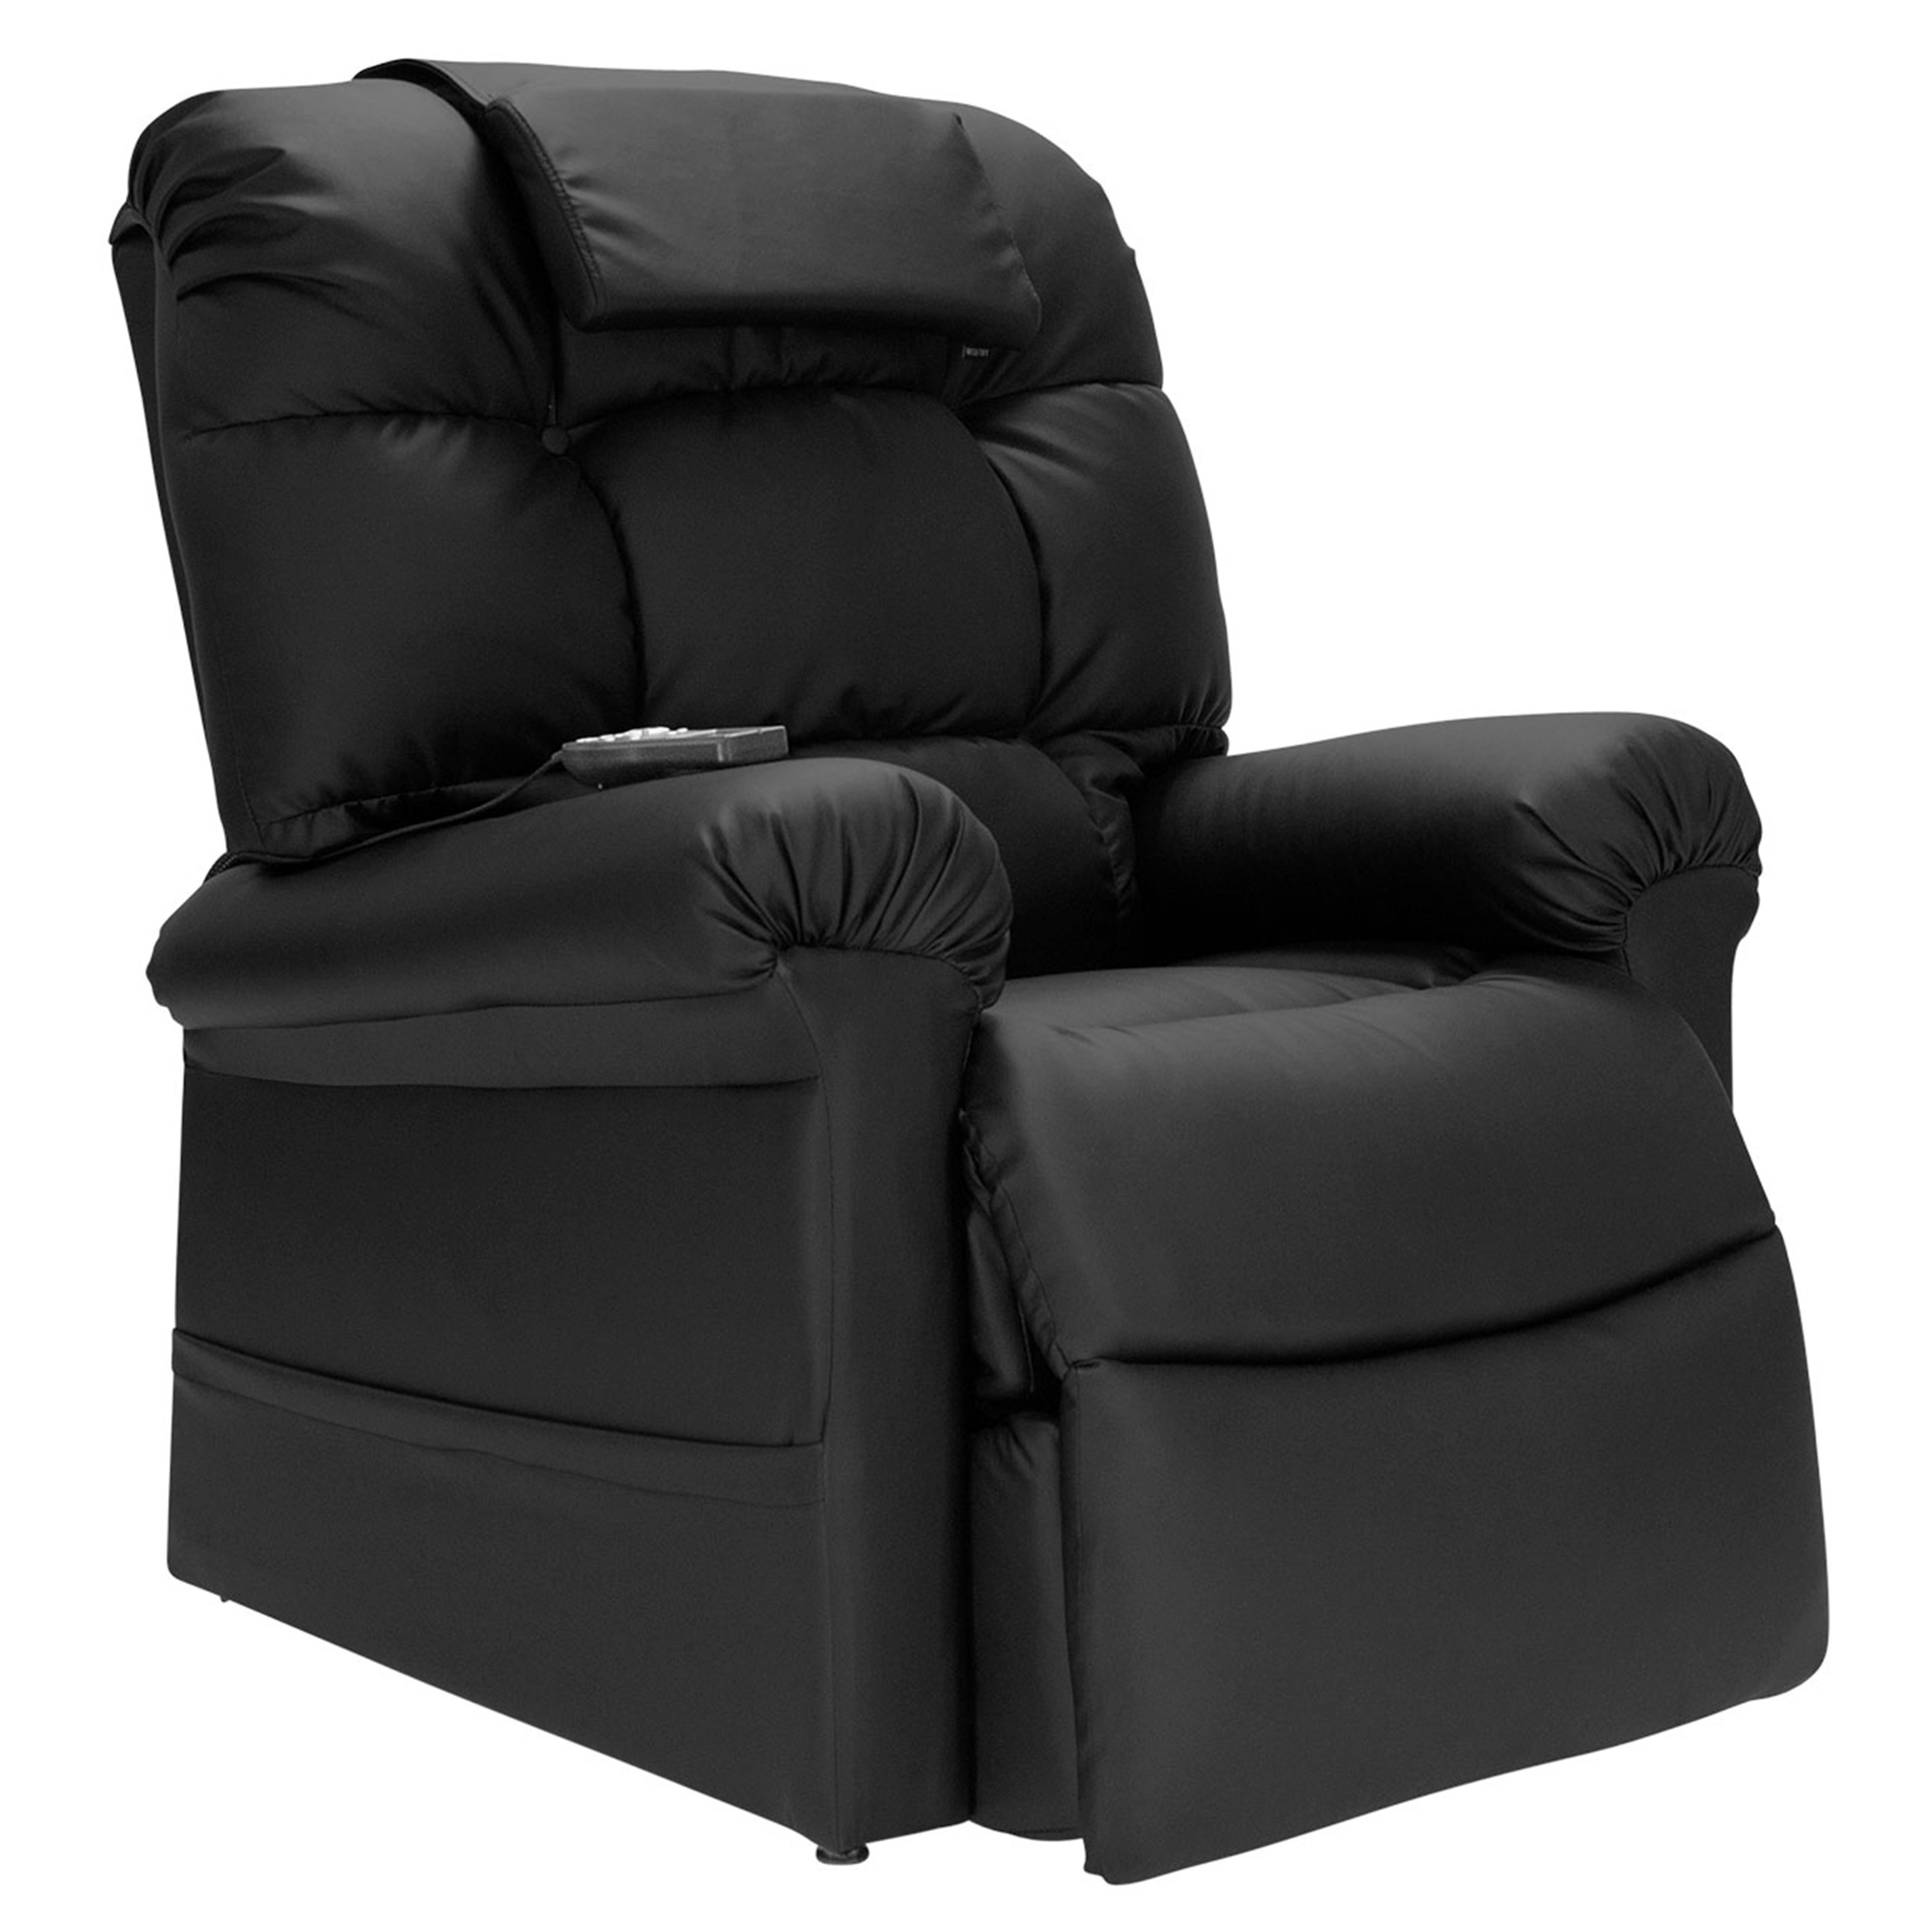 Astounding Wiselift 450 Sleeper Lift Chair Recliner Midnight Enduralux Leather Bralicious Painted Fabric Chair Ideas Braliciousco